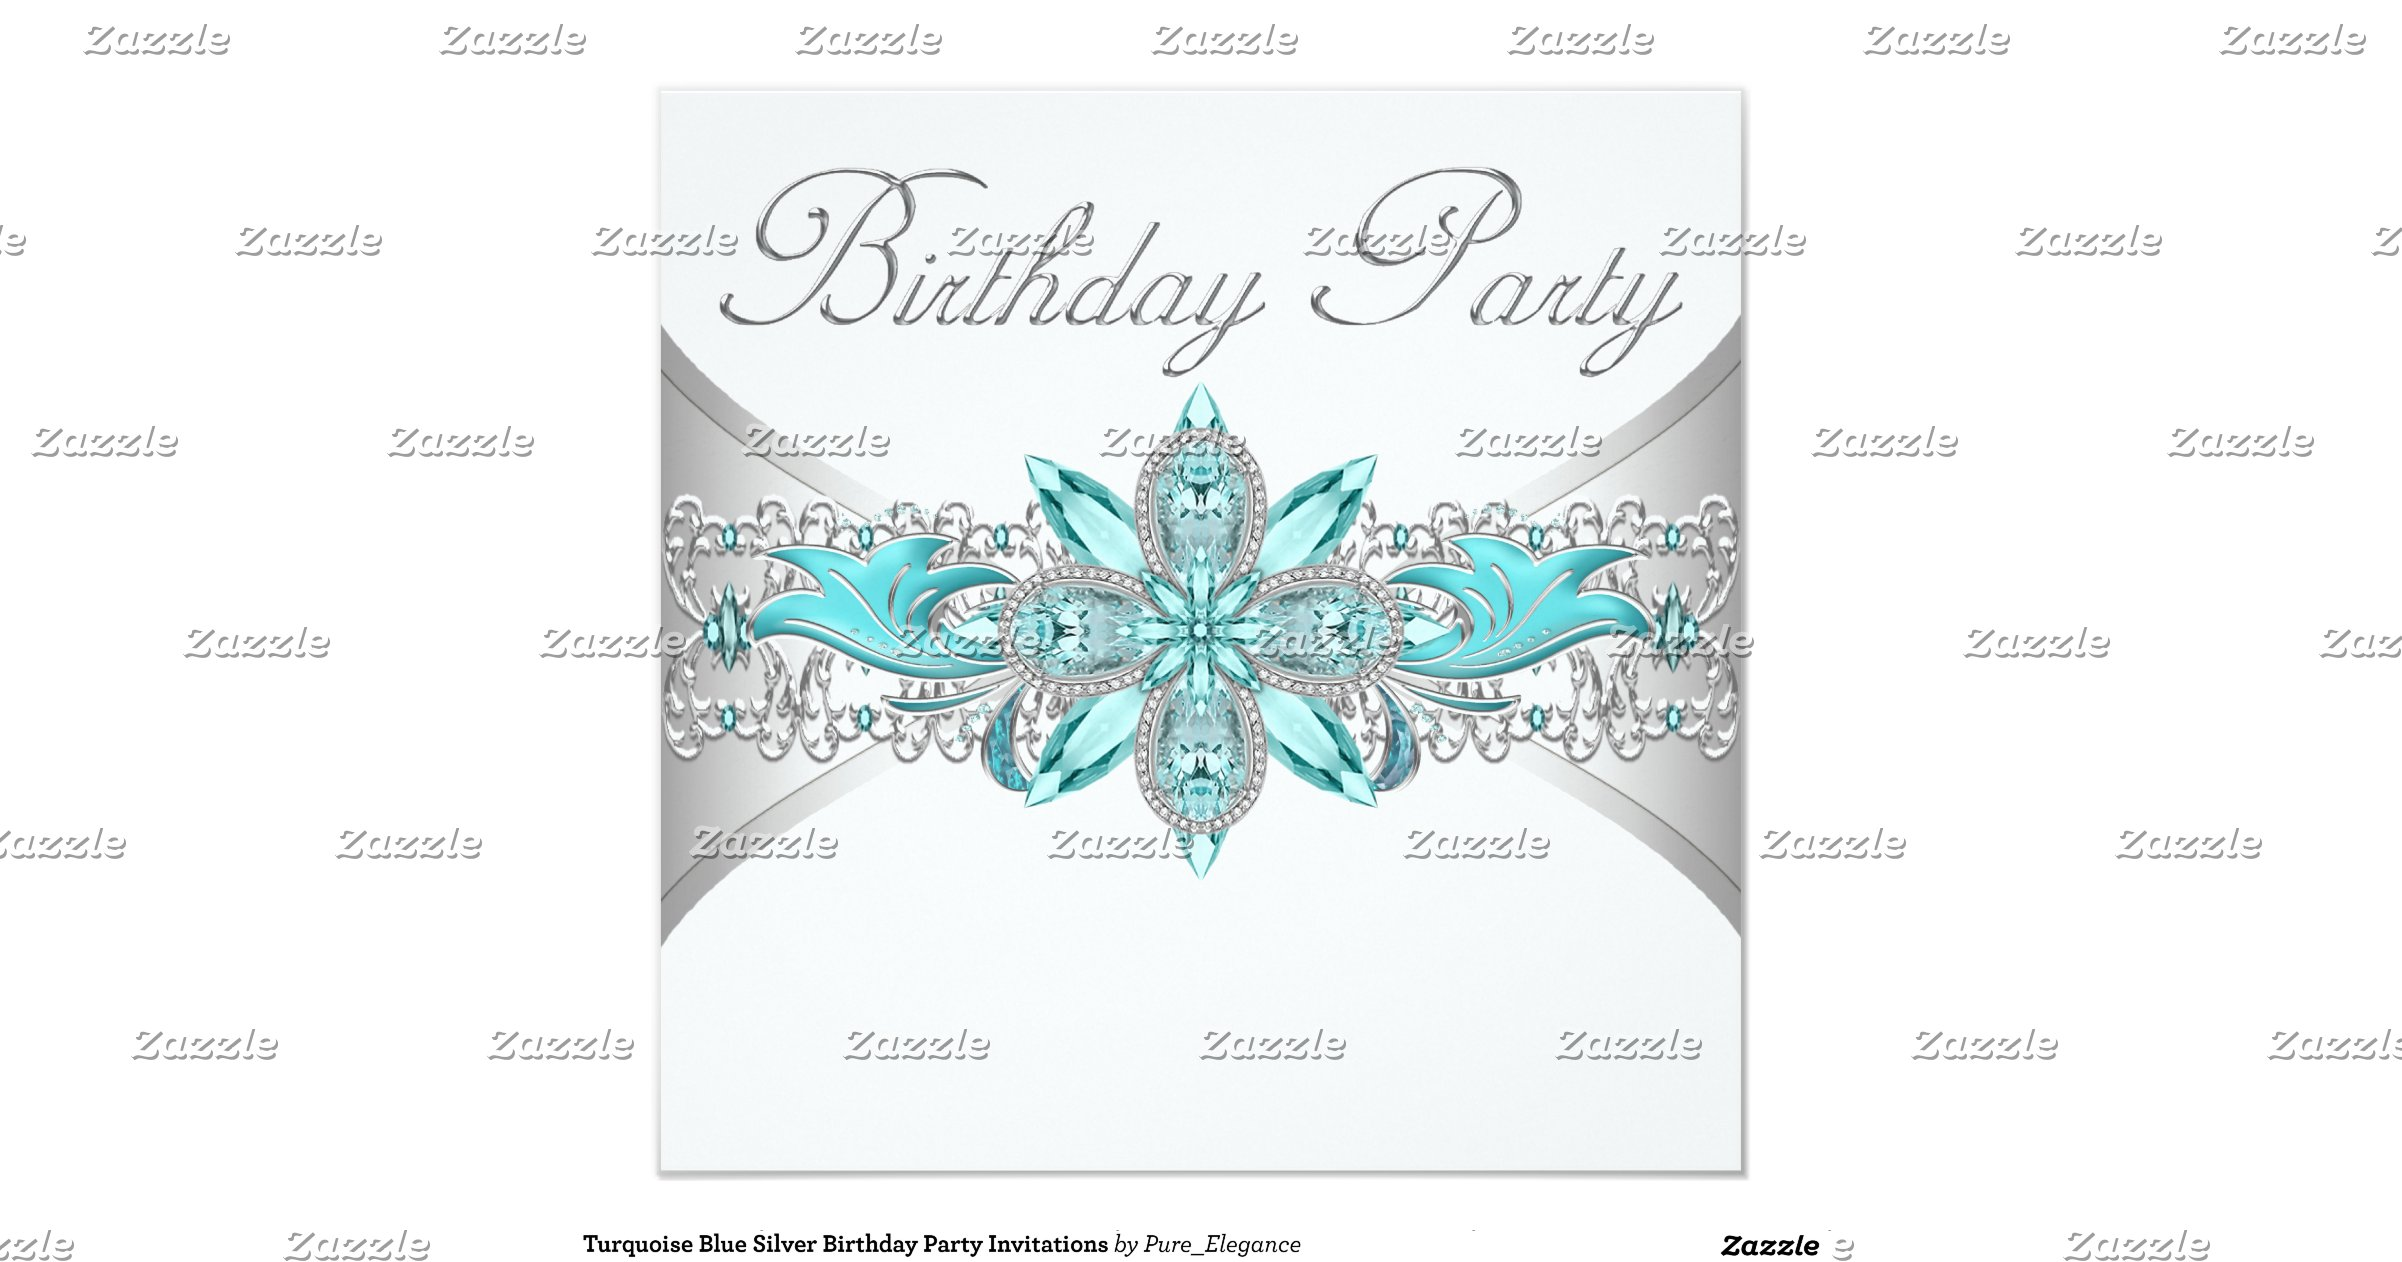 turquoise_blue_silver_birthday_party_invitations ...